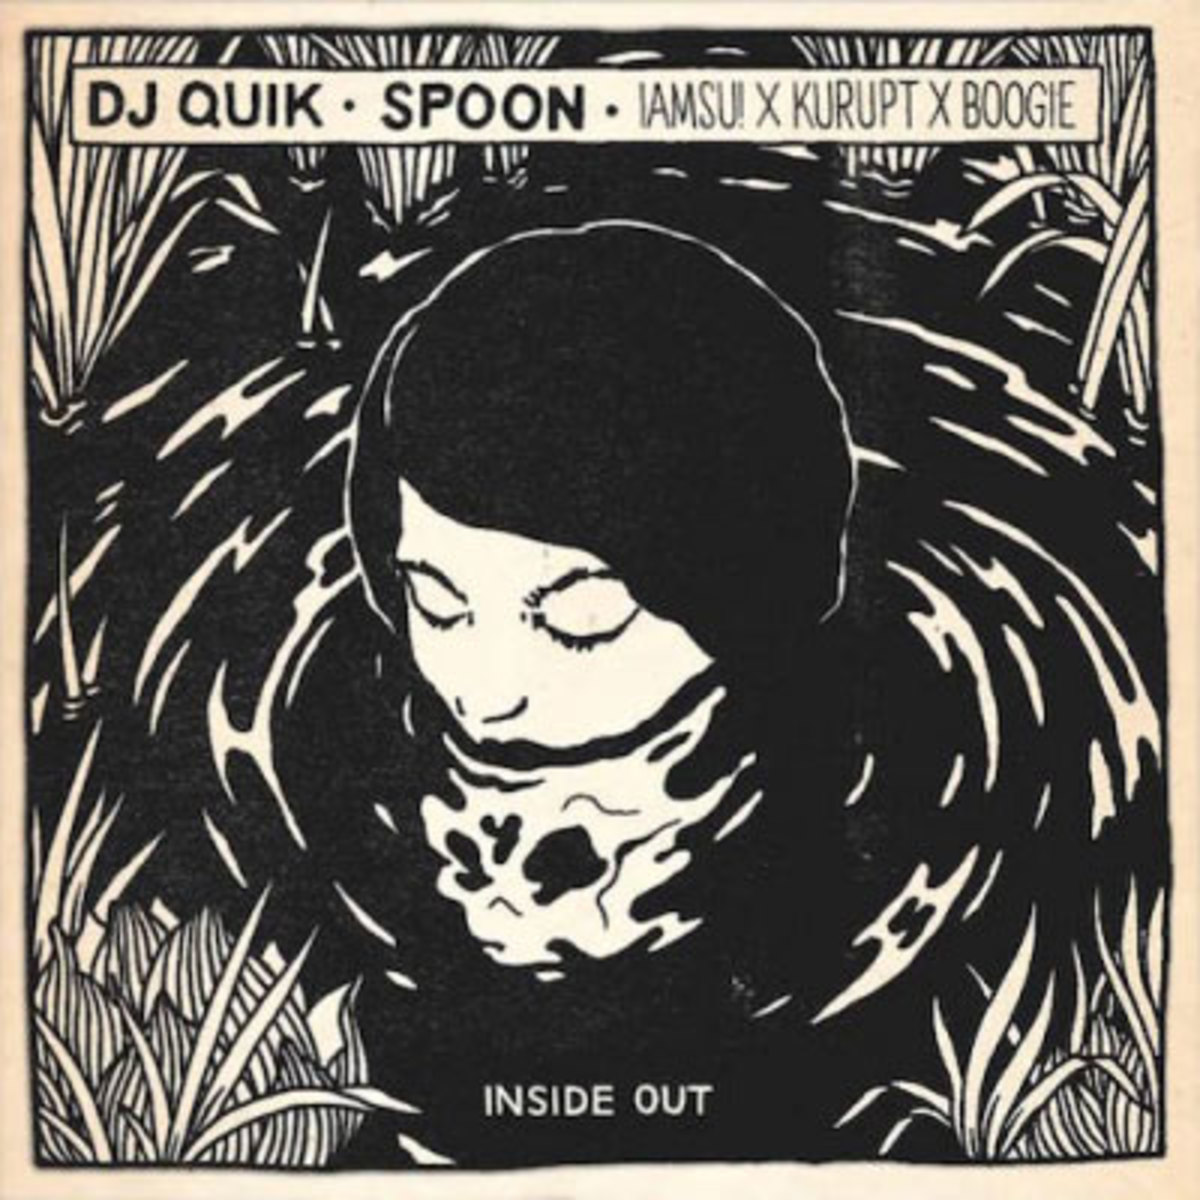 spoon-inside-out-dj-quik-remix.jpg